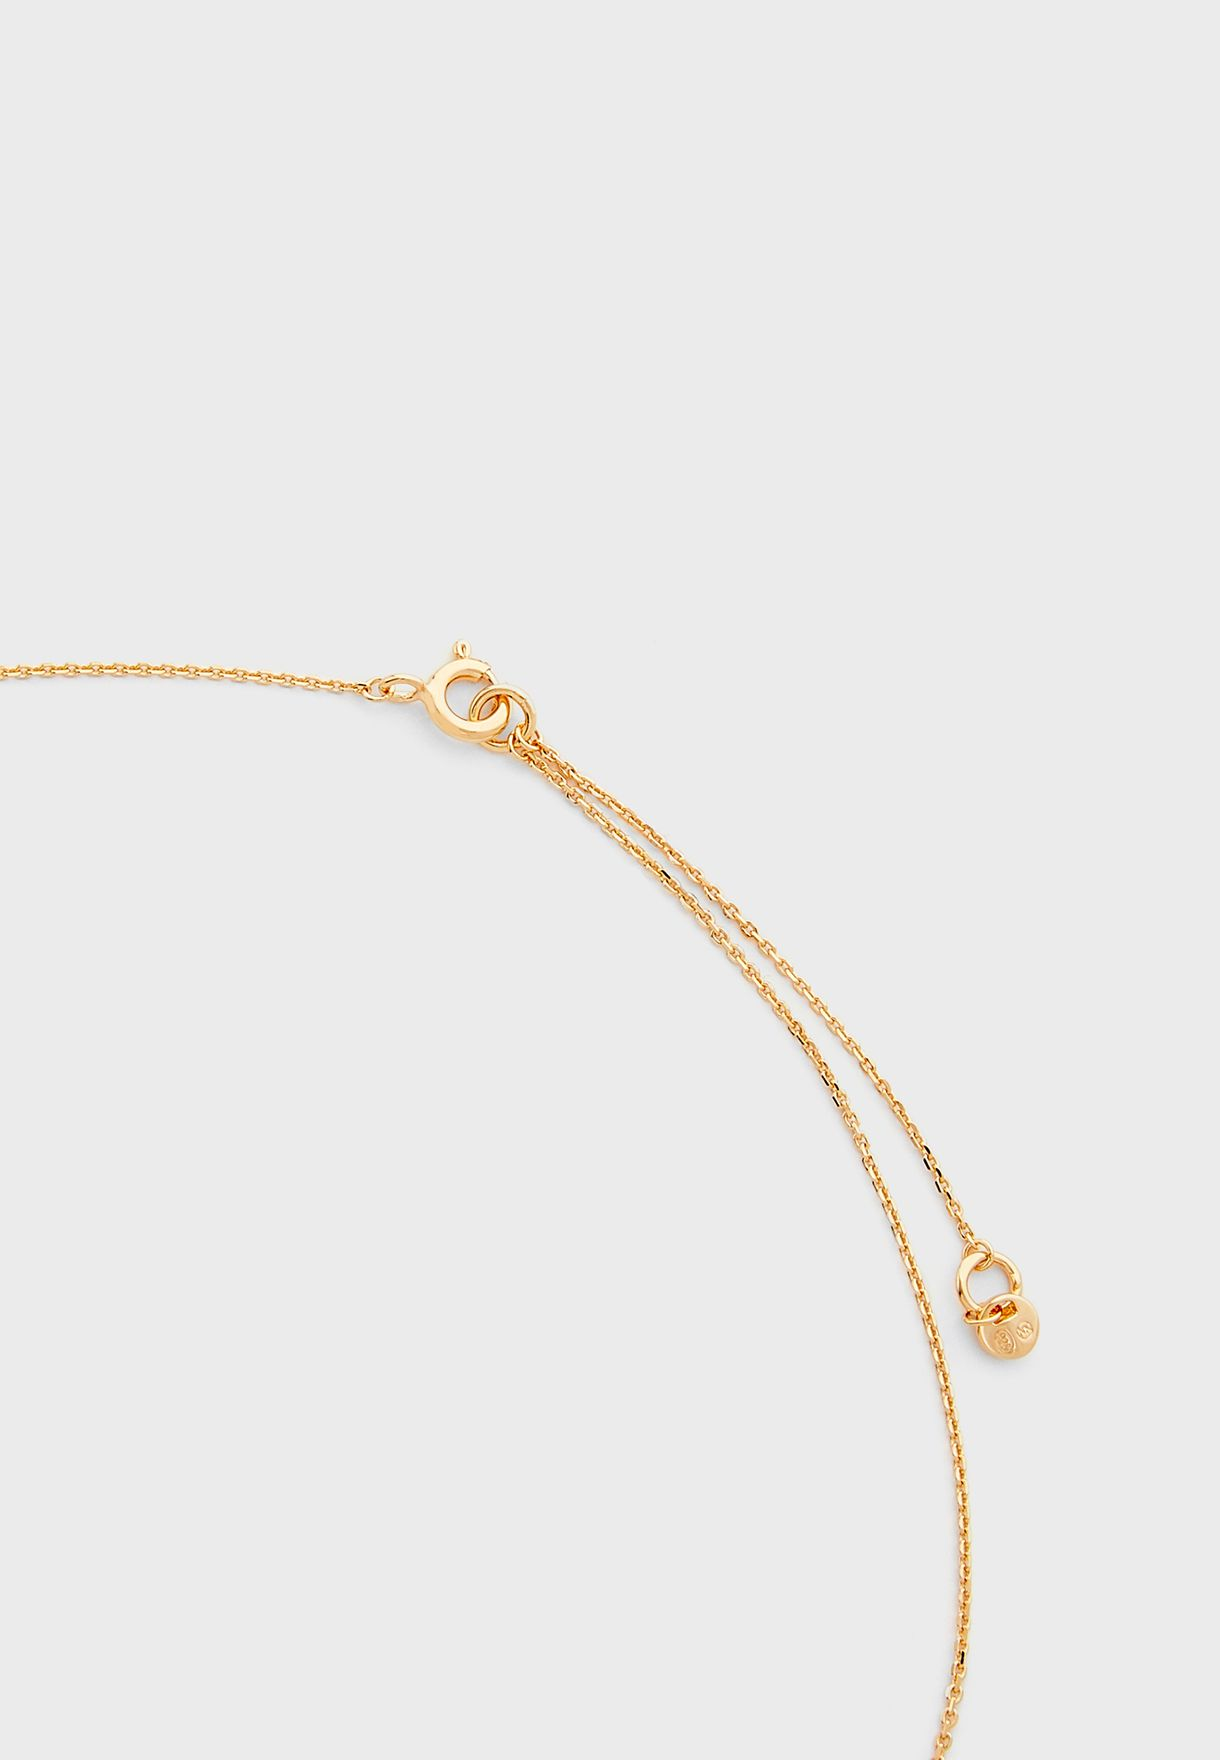 MKC1389AN791 Necklace